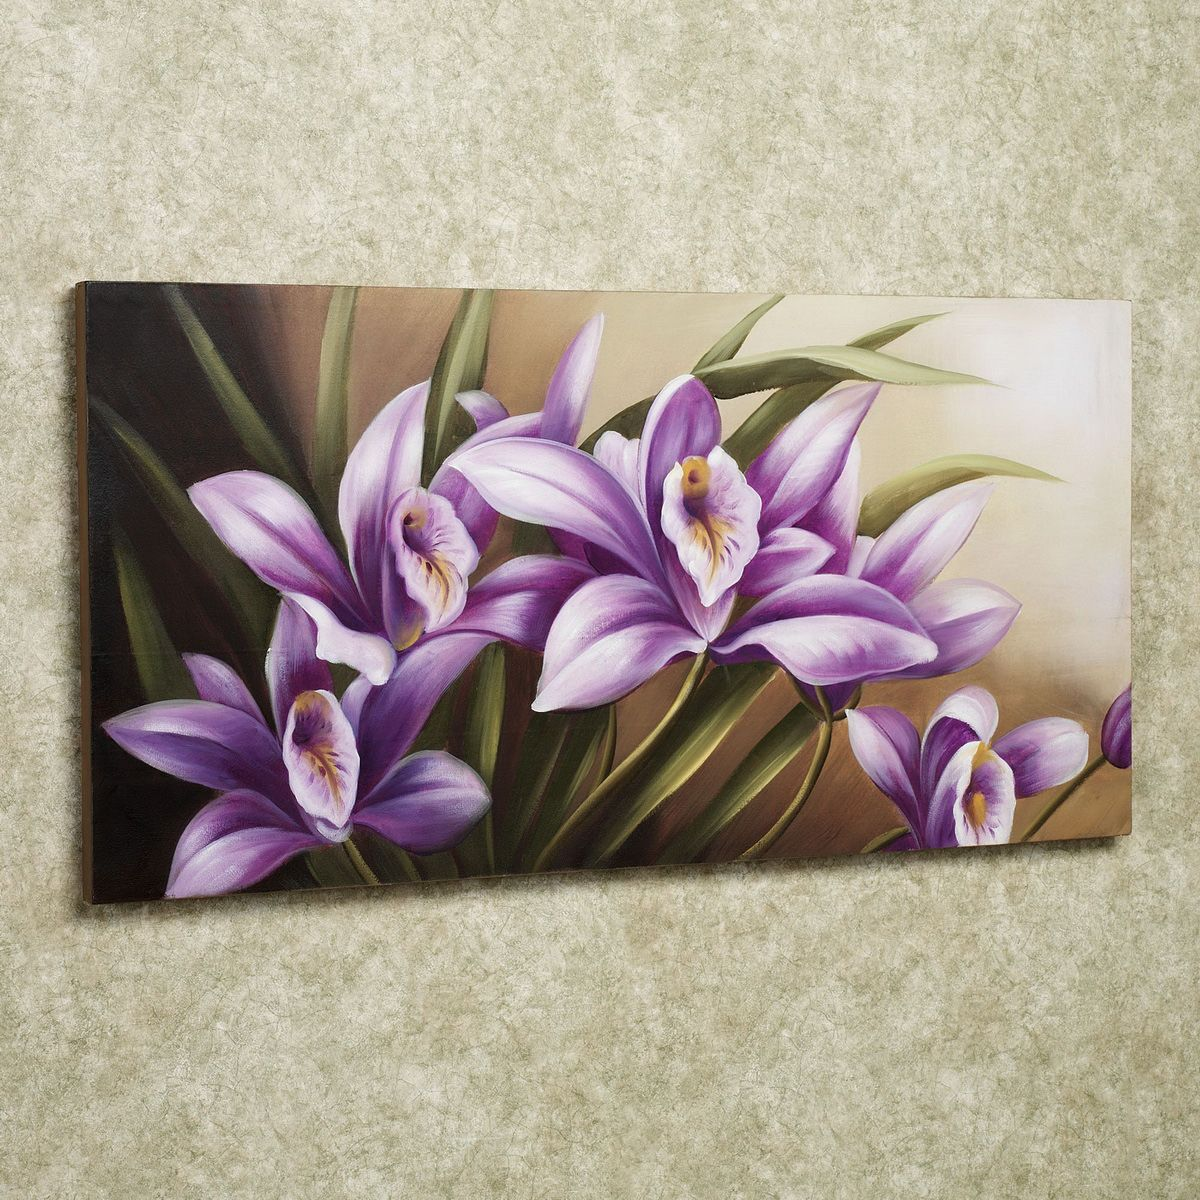 easy canvas painting ideas:scenic ideas sensuality of iris purple flowers  design your own canvas wall creative canvas wall art ideas to spice up your  house ...